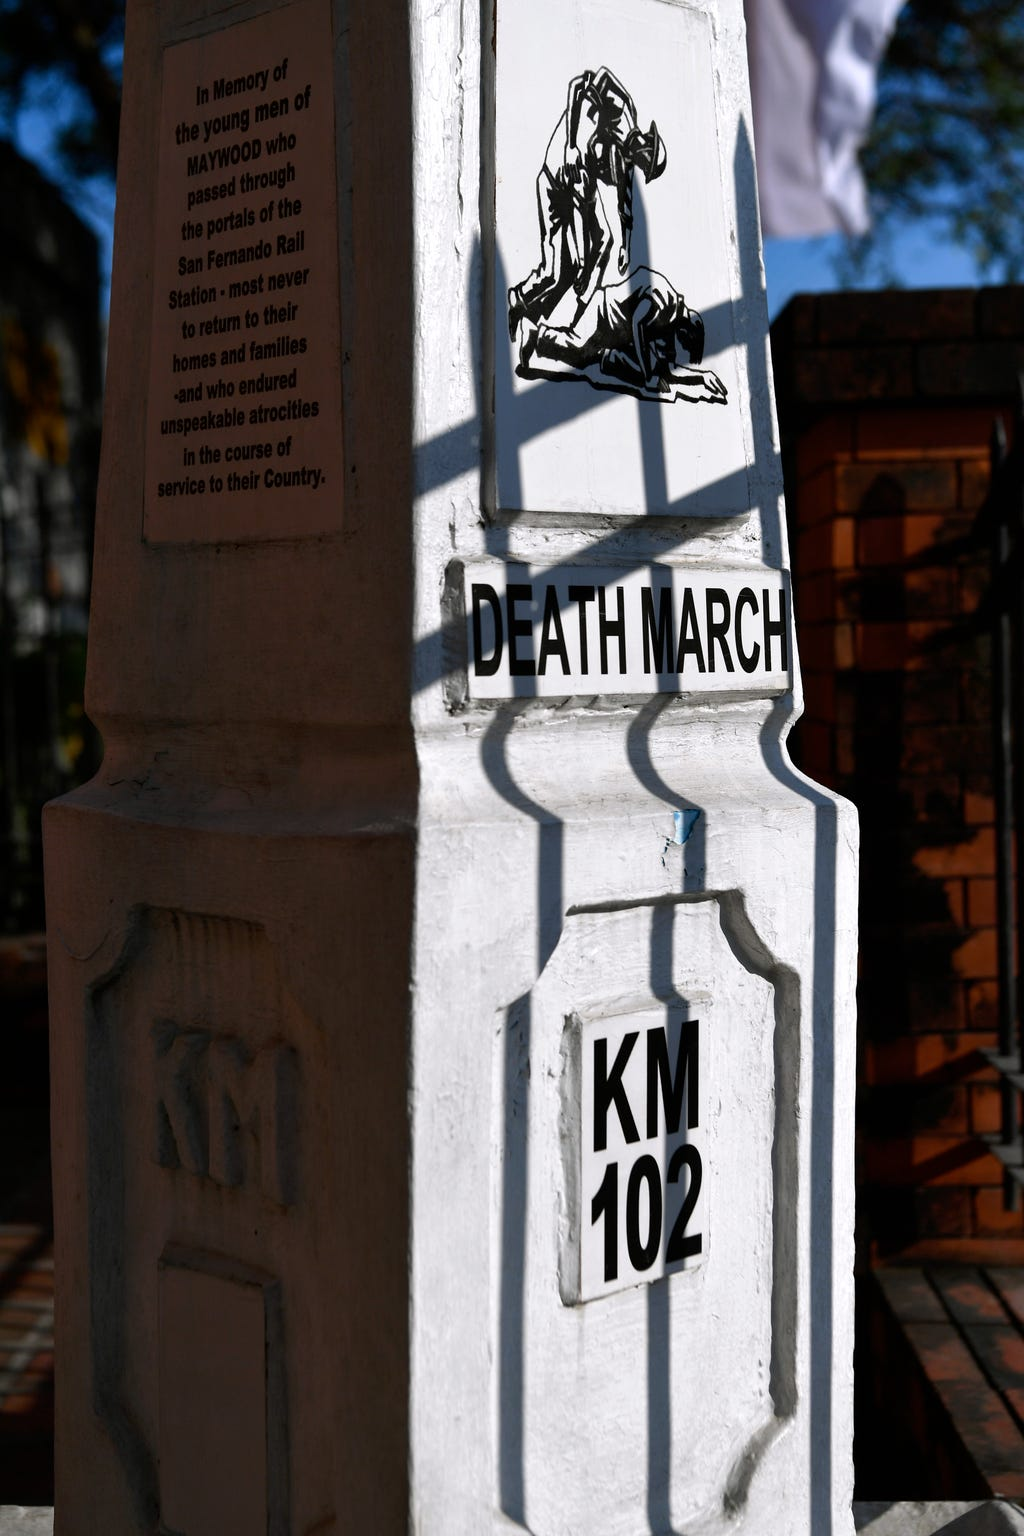 A low sun casts shadows upon a Bataan Death March marker in front of the San Fernando train station in the Philippines Oct. 21, 2019. The markers are found regularly along the entire route of the World War II forced march of American and Filipino soldiers.